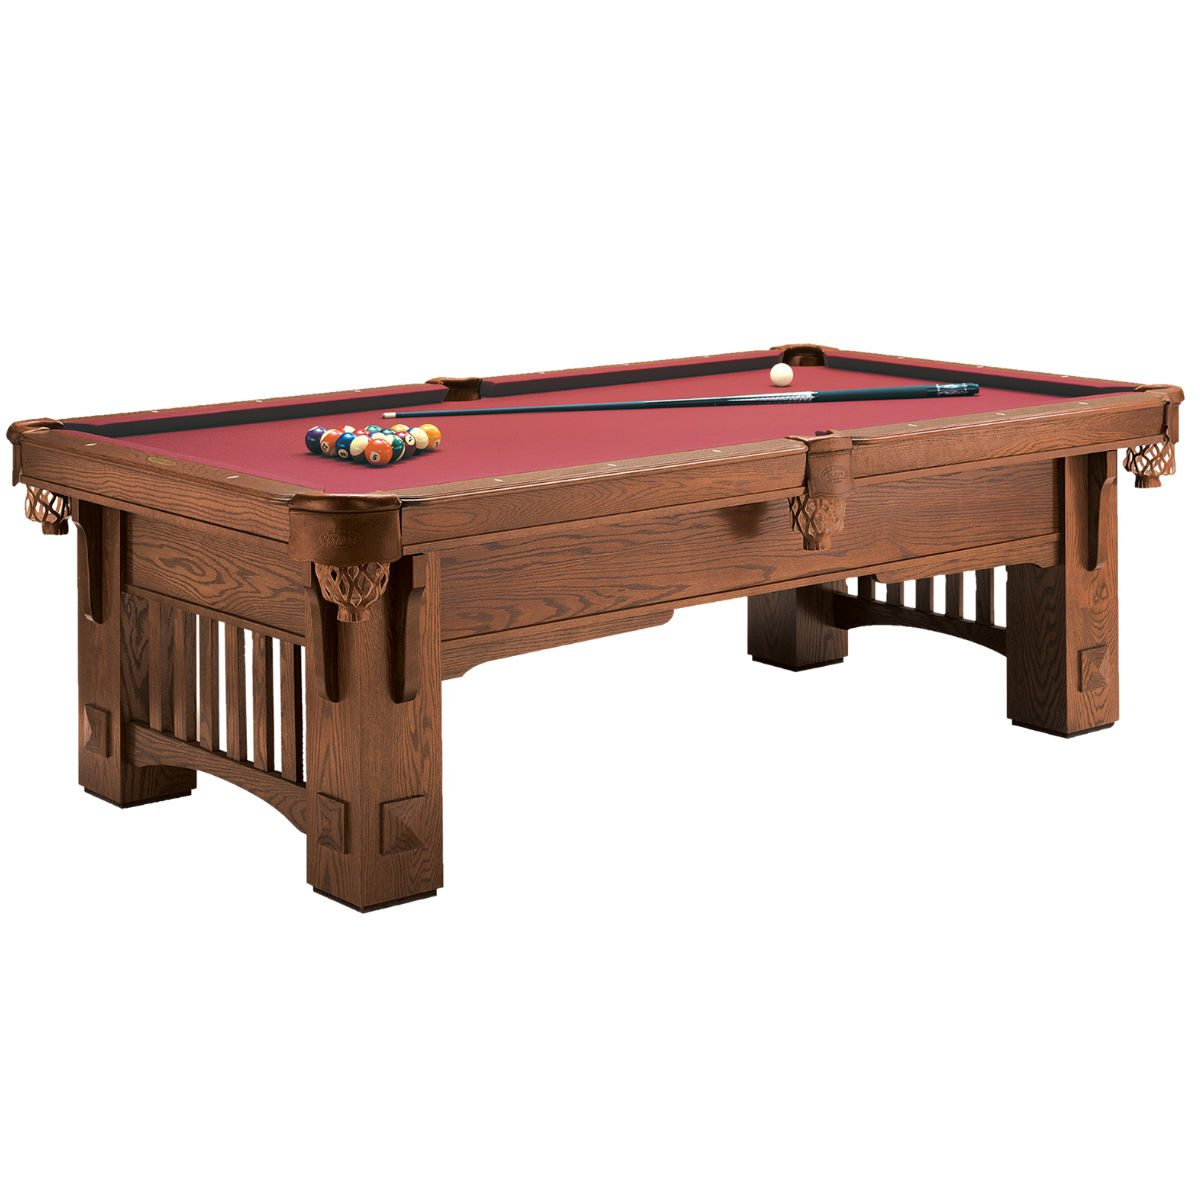 New Corononado Pool Table Olhausen Montgomeryville Pa